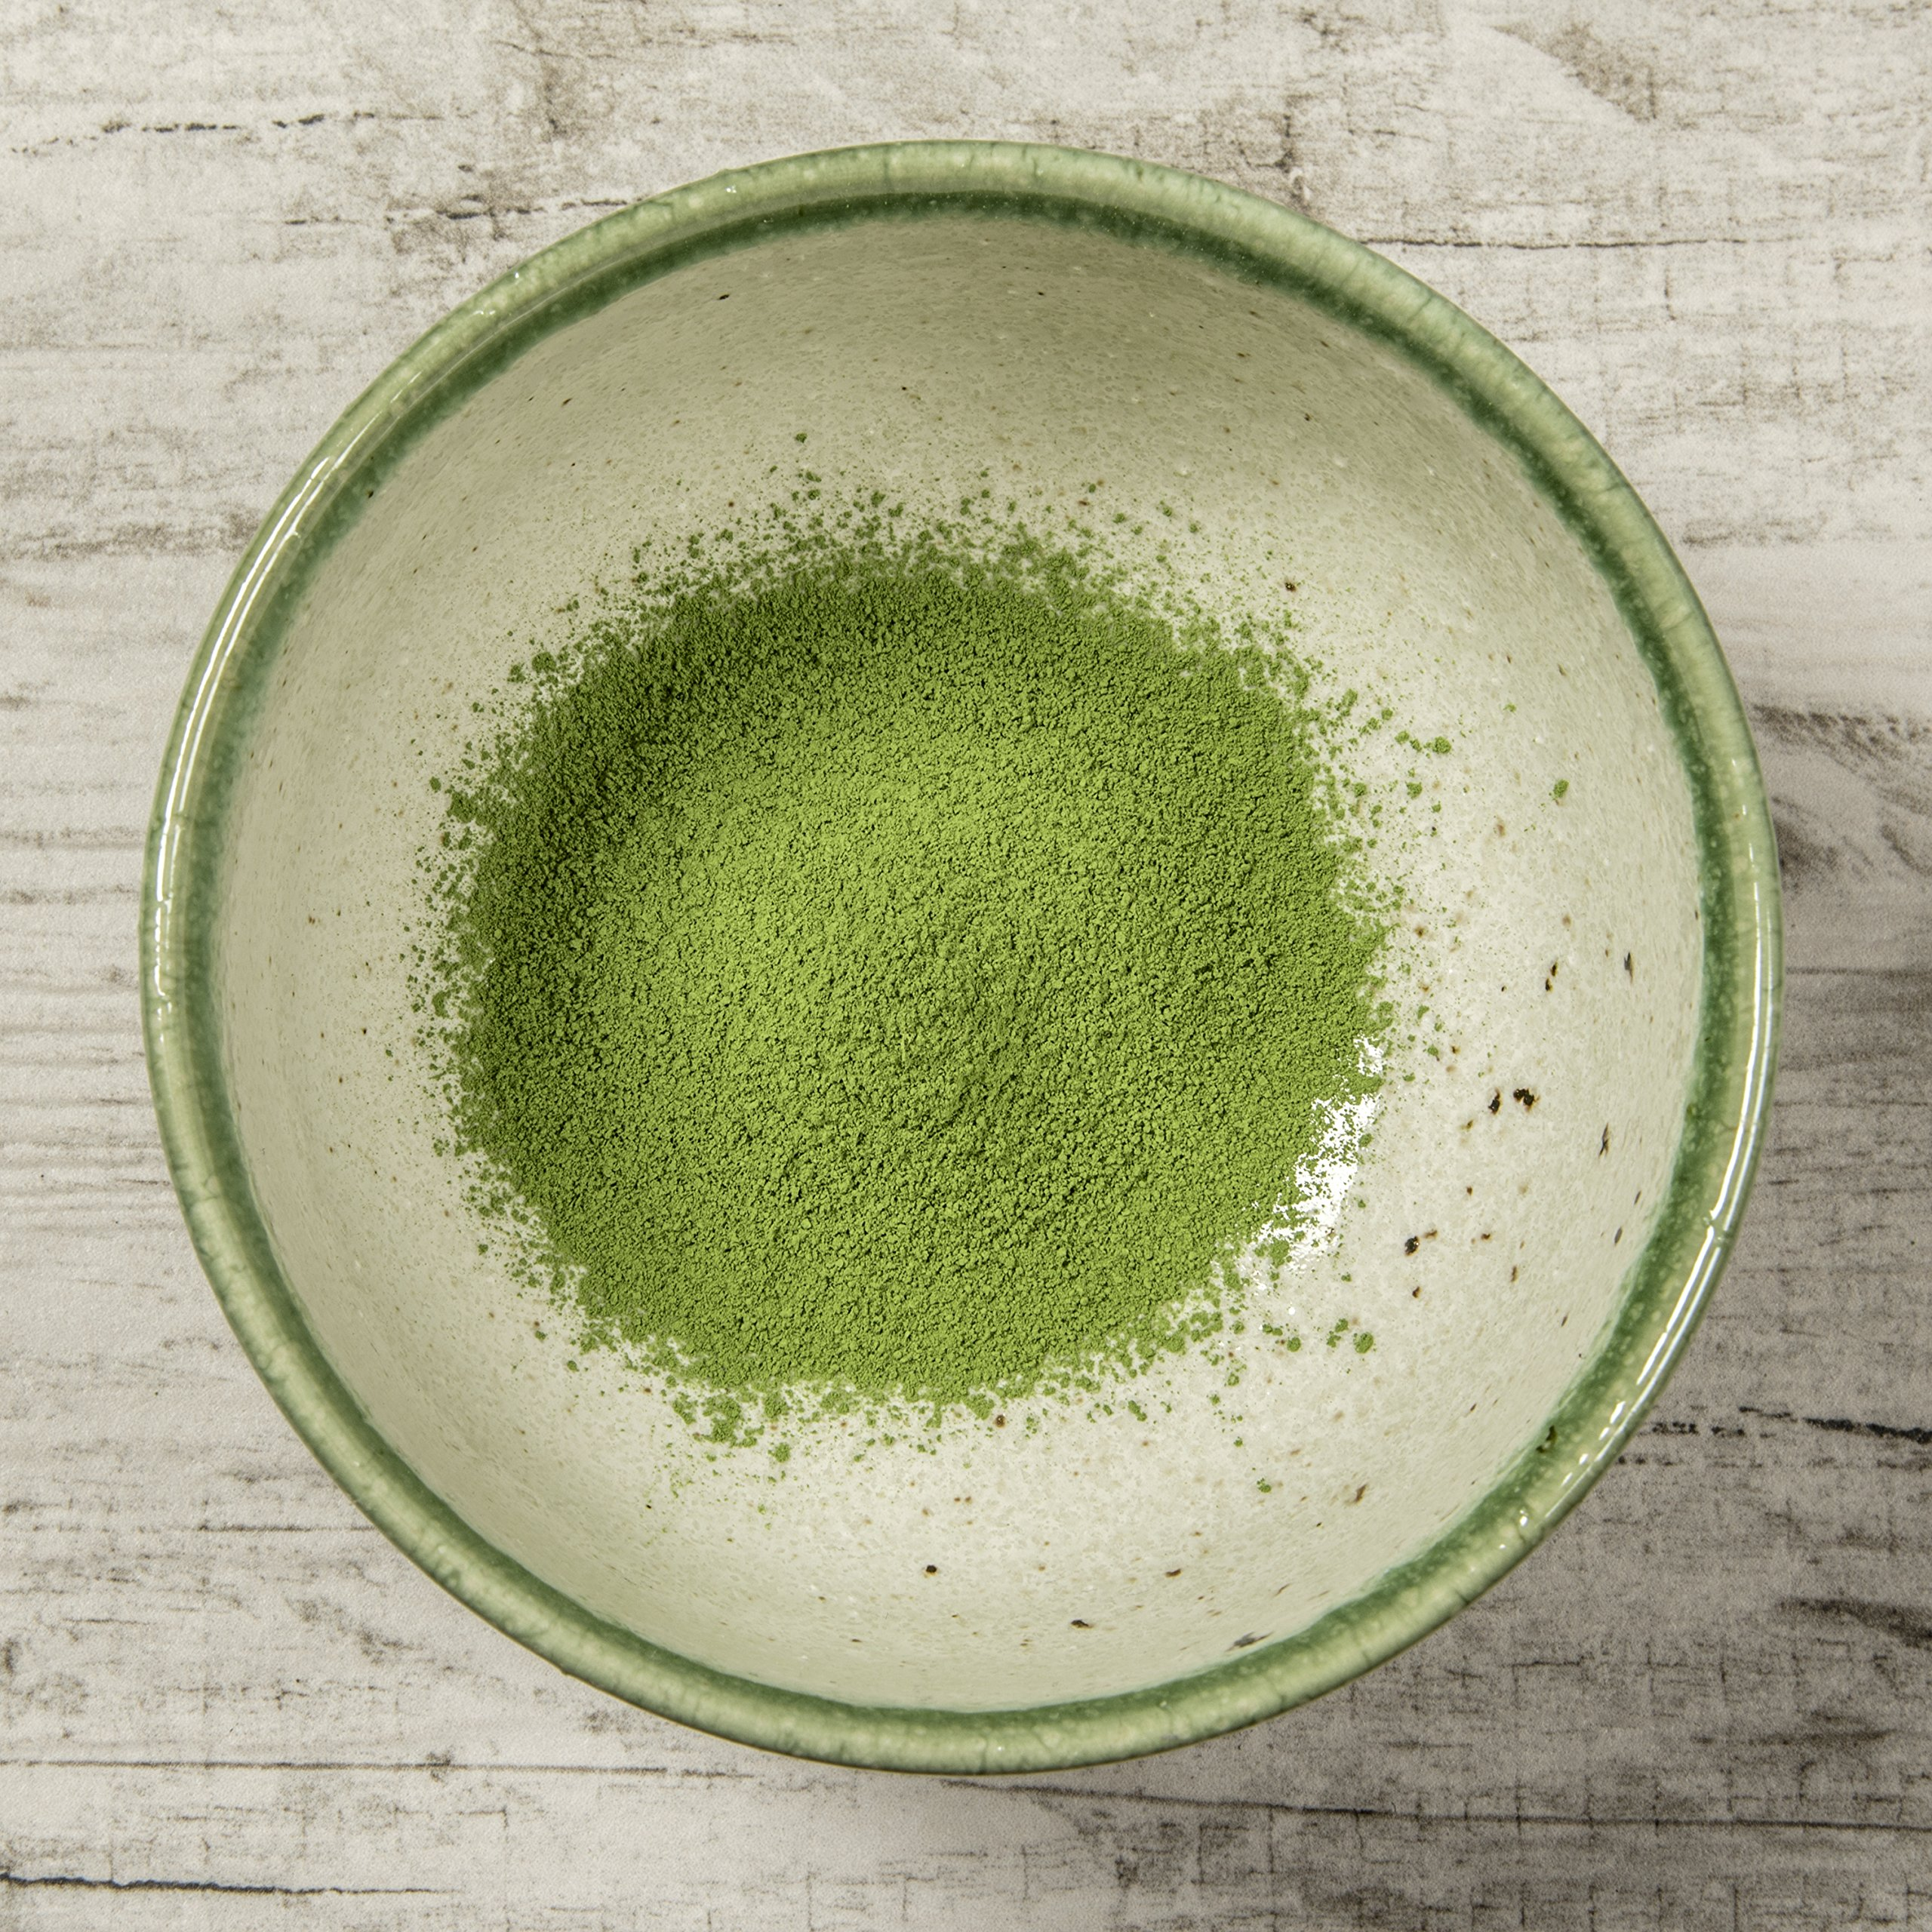 Tealyra - Matcha Bowl - Authentic Ceramic Made in Japan - Chawan from Japanese Master-Craft - Matcha Tea Cup Ceremony Use - Green by Tealyra (Image #4)